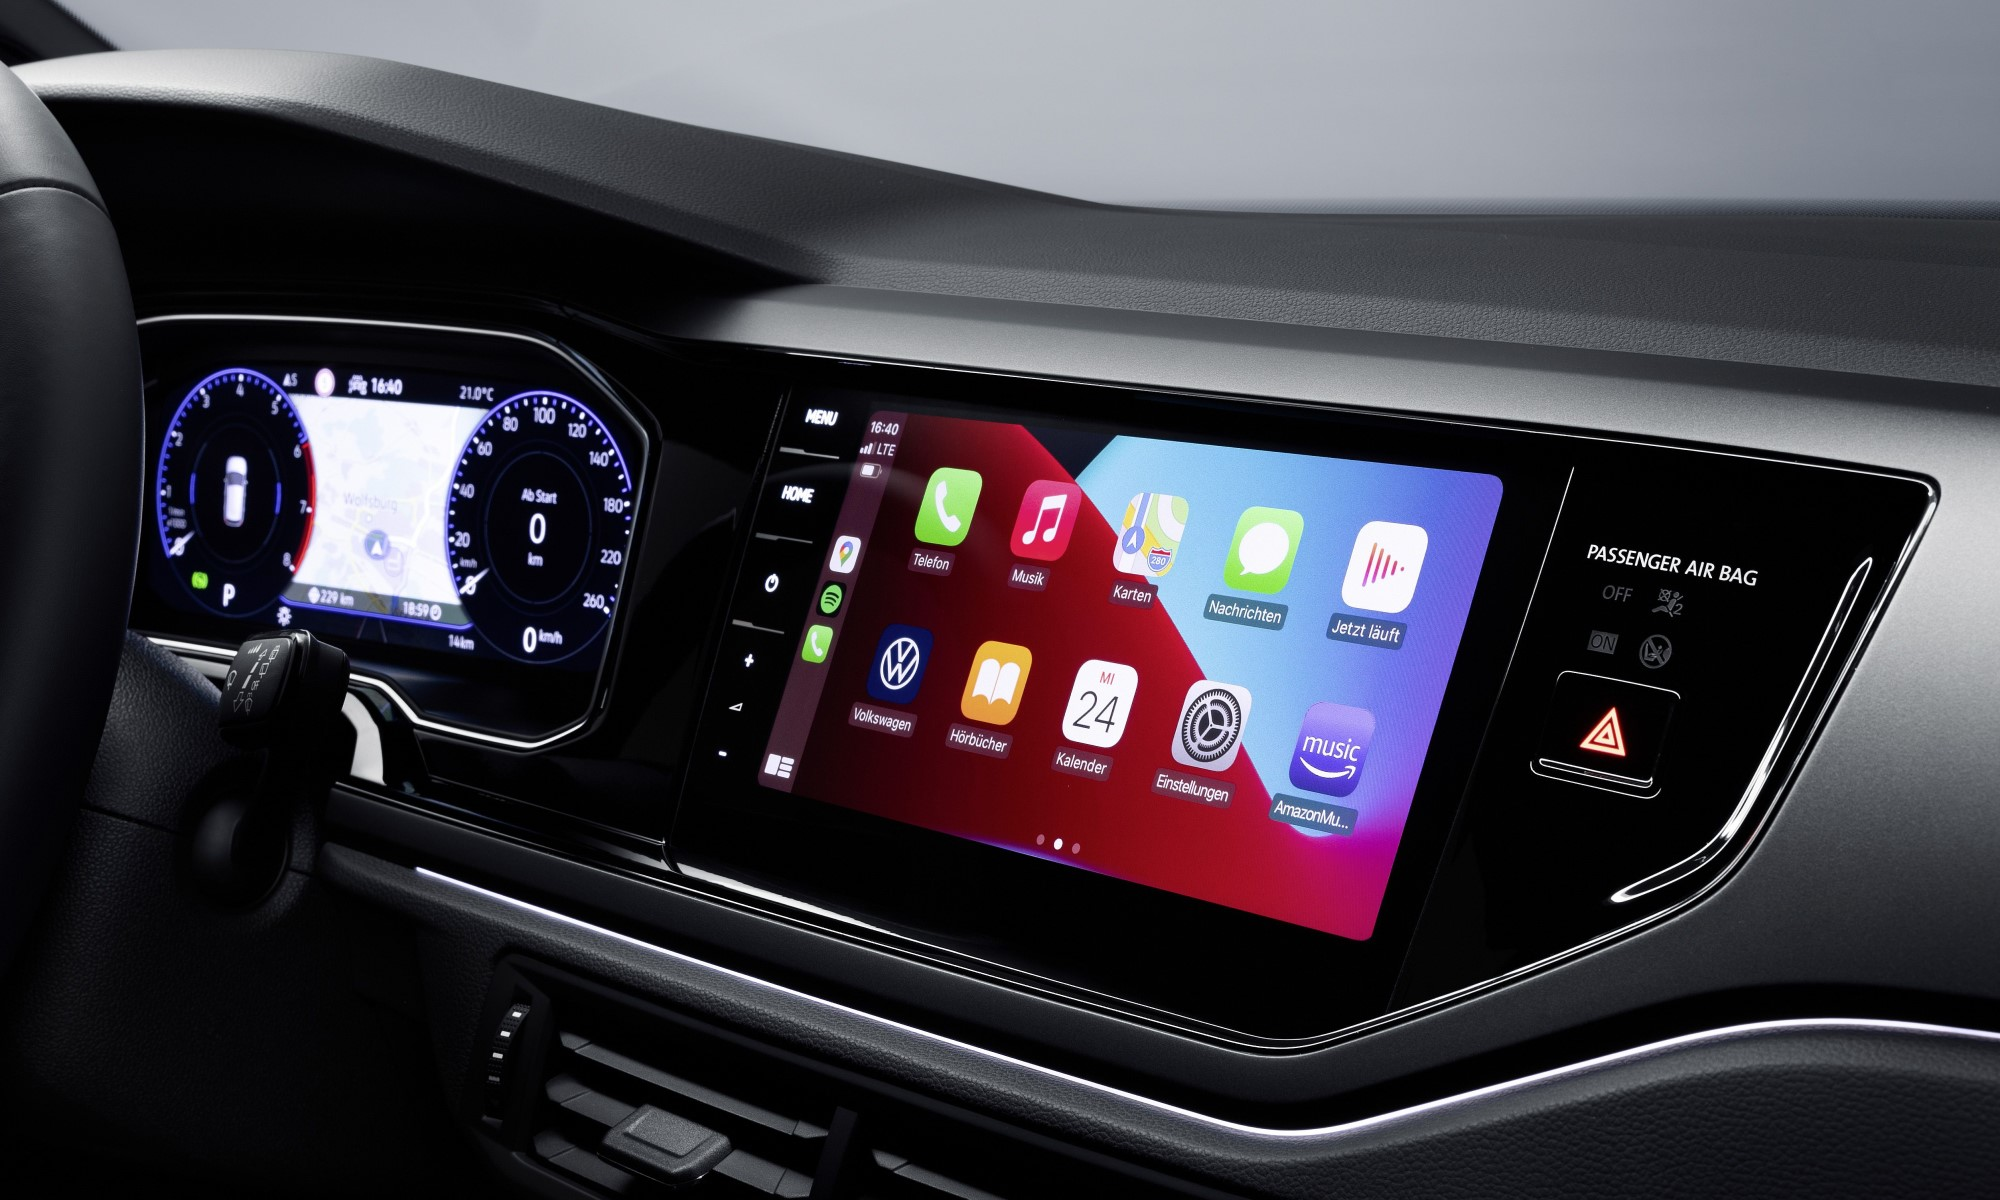 Revised VW Polo infotainment